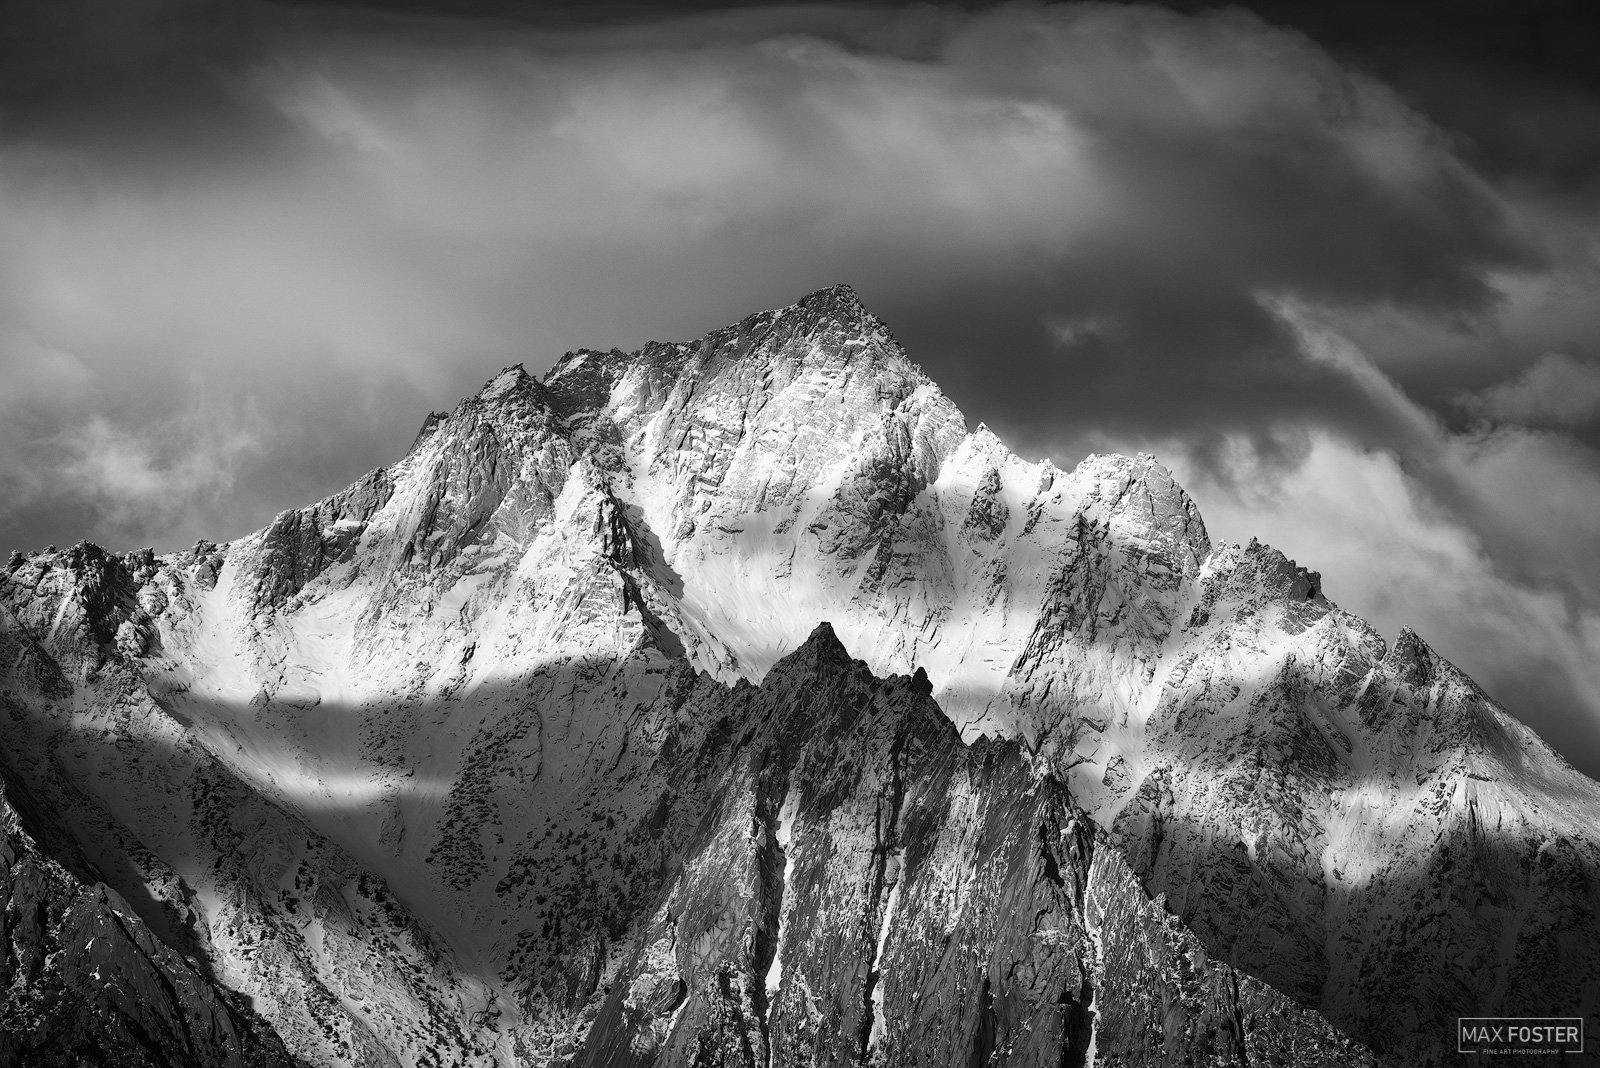 Fine Art Limited Edition of 50 The black and white or monochrome version of Dressed in White, taken of a Lone Pine Peak in California...